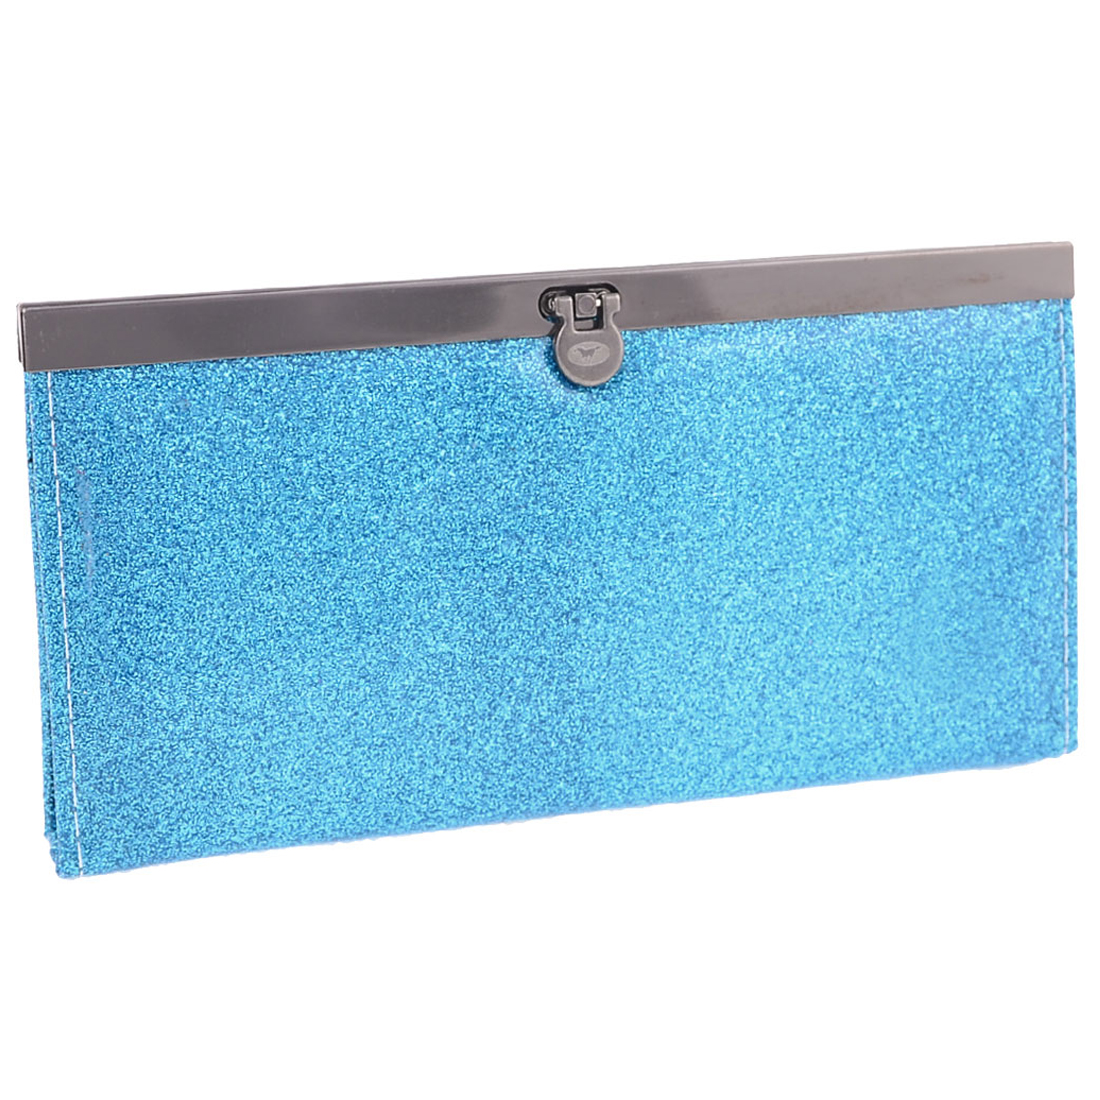 Blue Glittering Powder Metal Buckle Closure Nylon Lining Purse